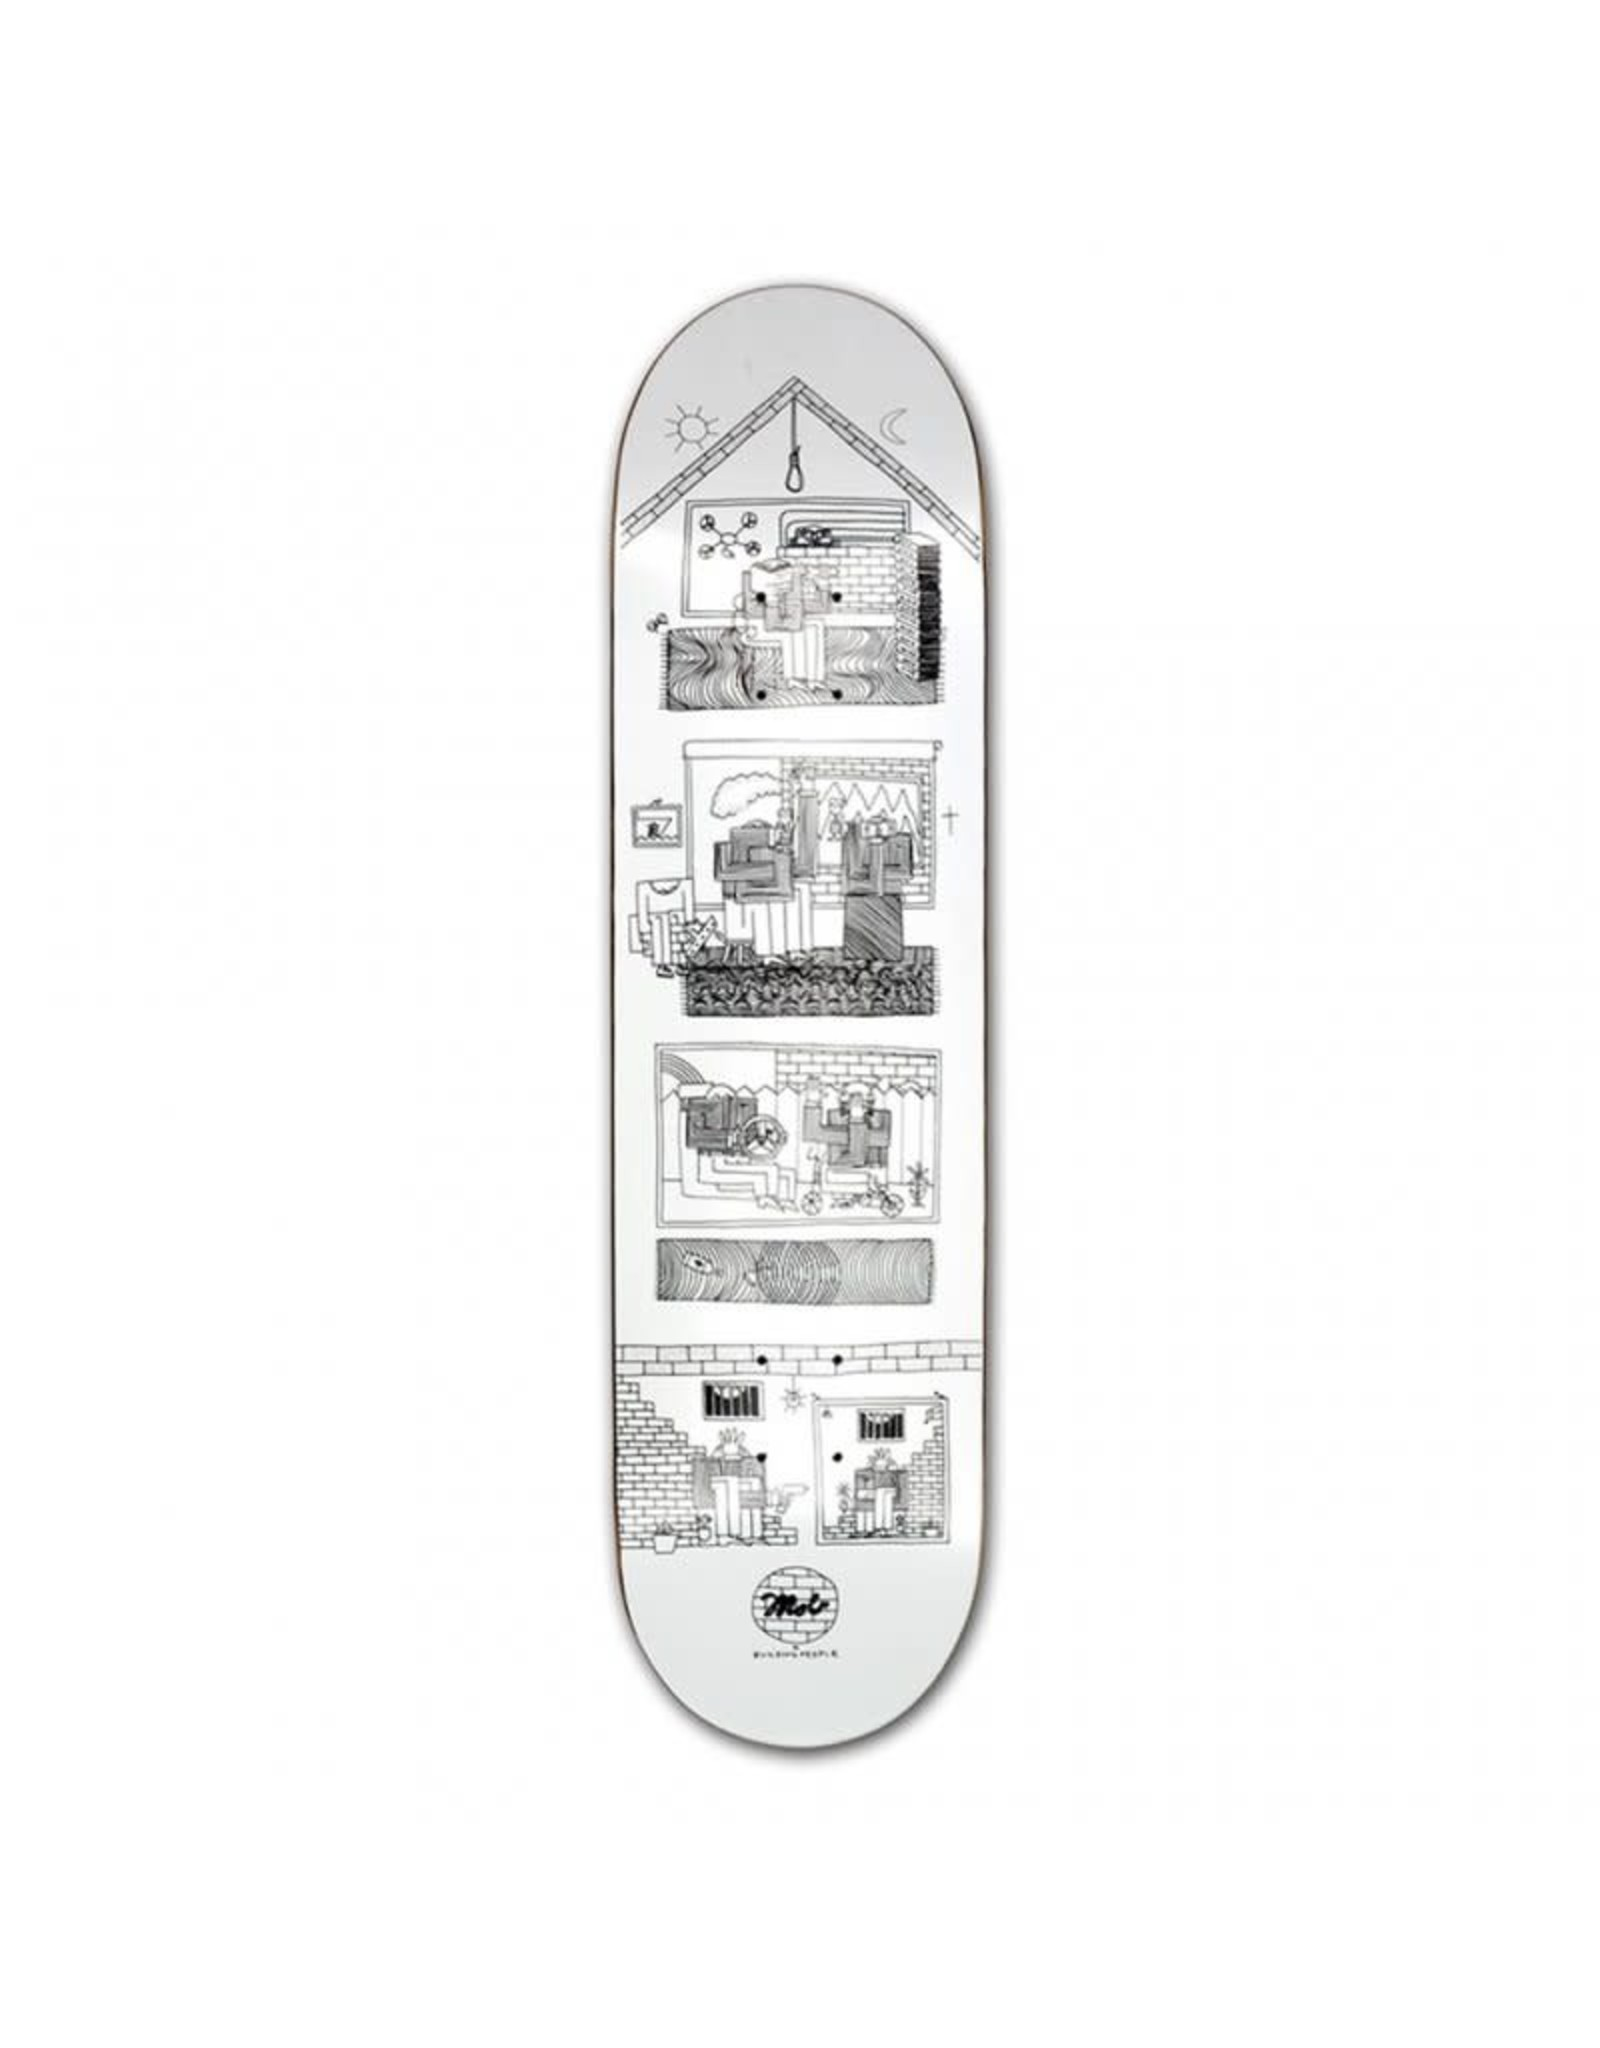 MOB MOB 8.5 Skateboards Building People Deck white x black